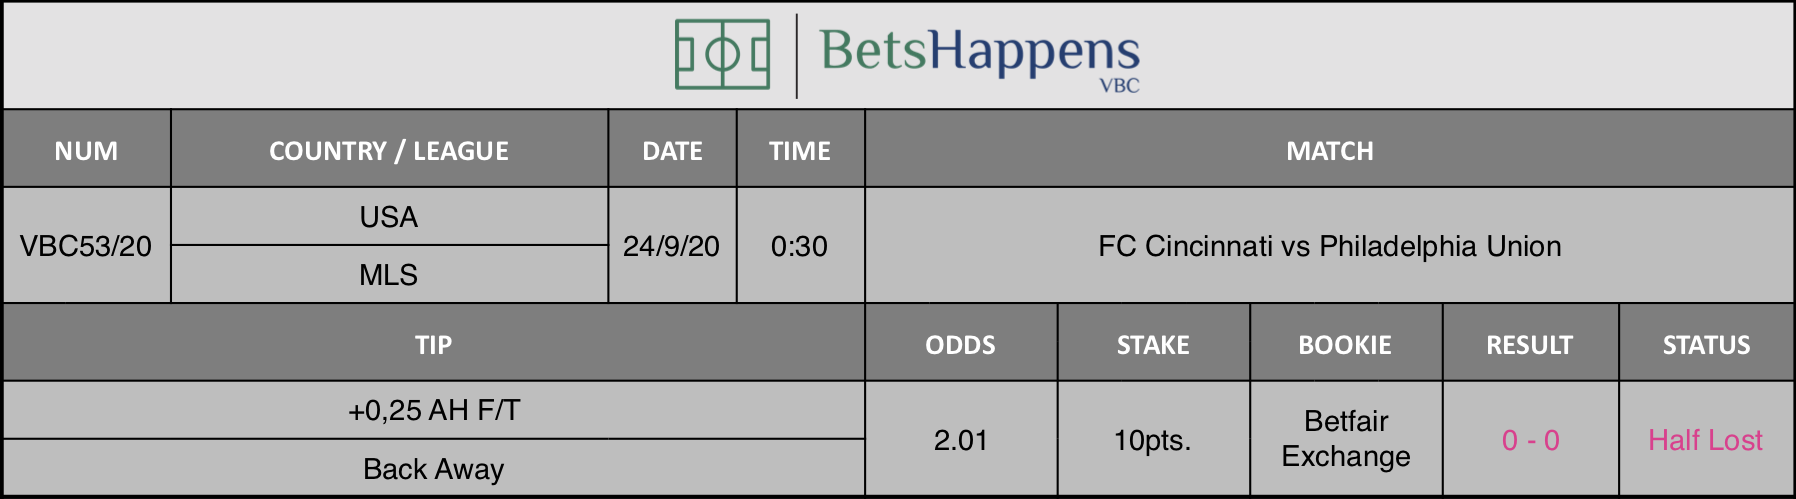 Results of our advice for the FC Cincinnati vs Philadelphia Union game where +0.25 AH F / T Back Away is recommended.